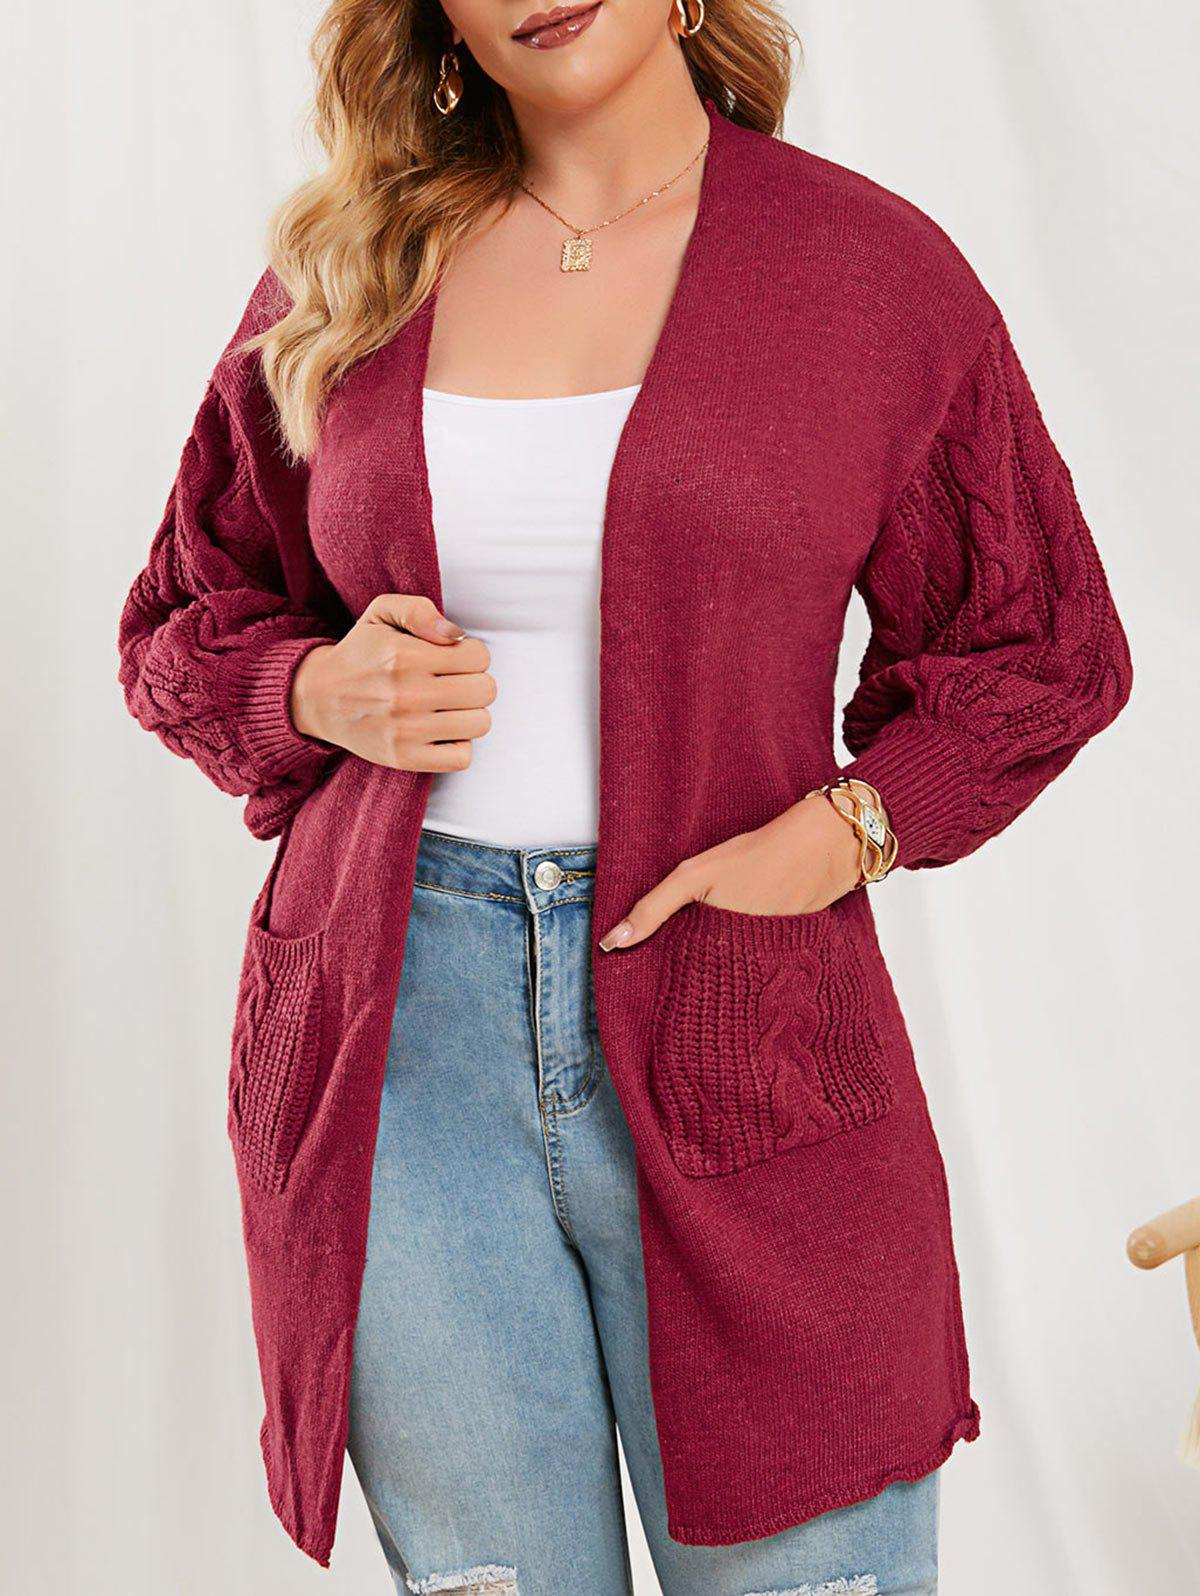 New Dual Pocket Lantern Sleeve Cable Knit Cardigan